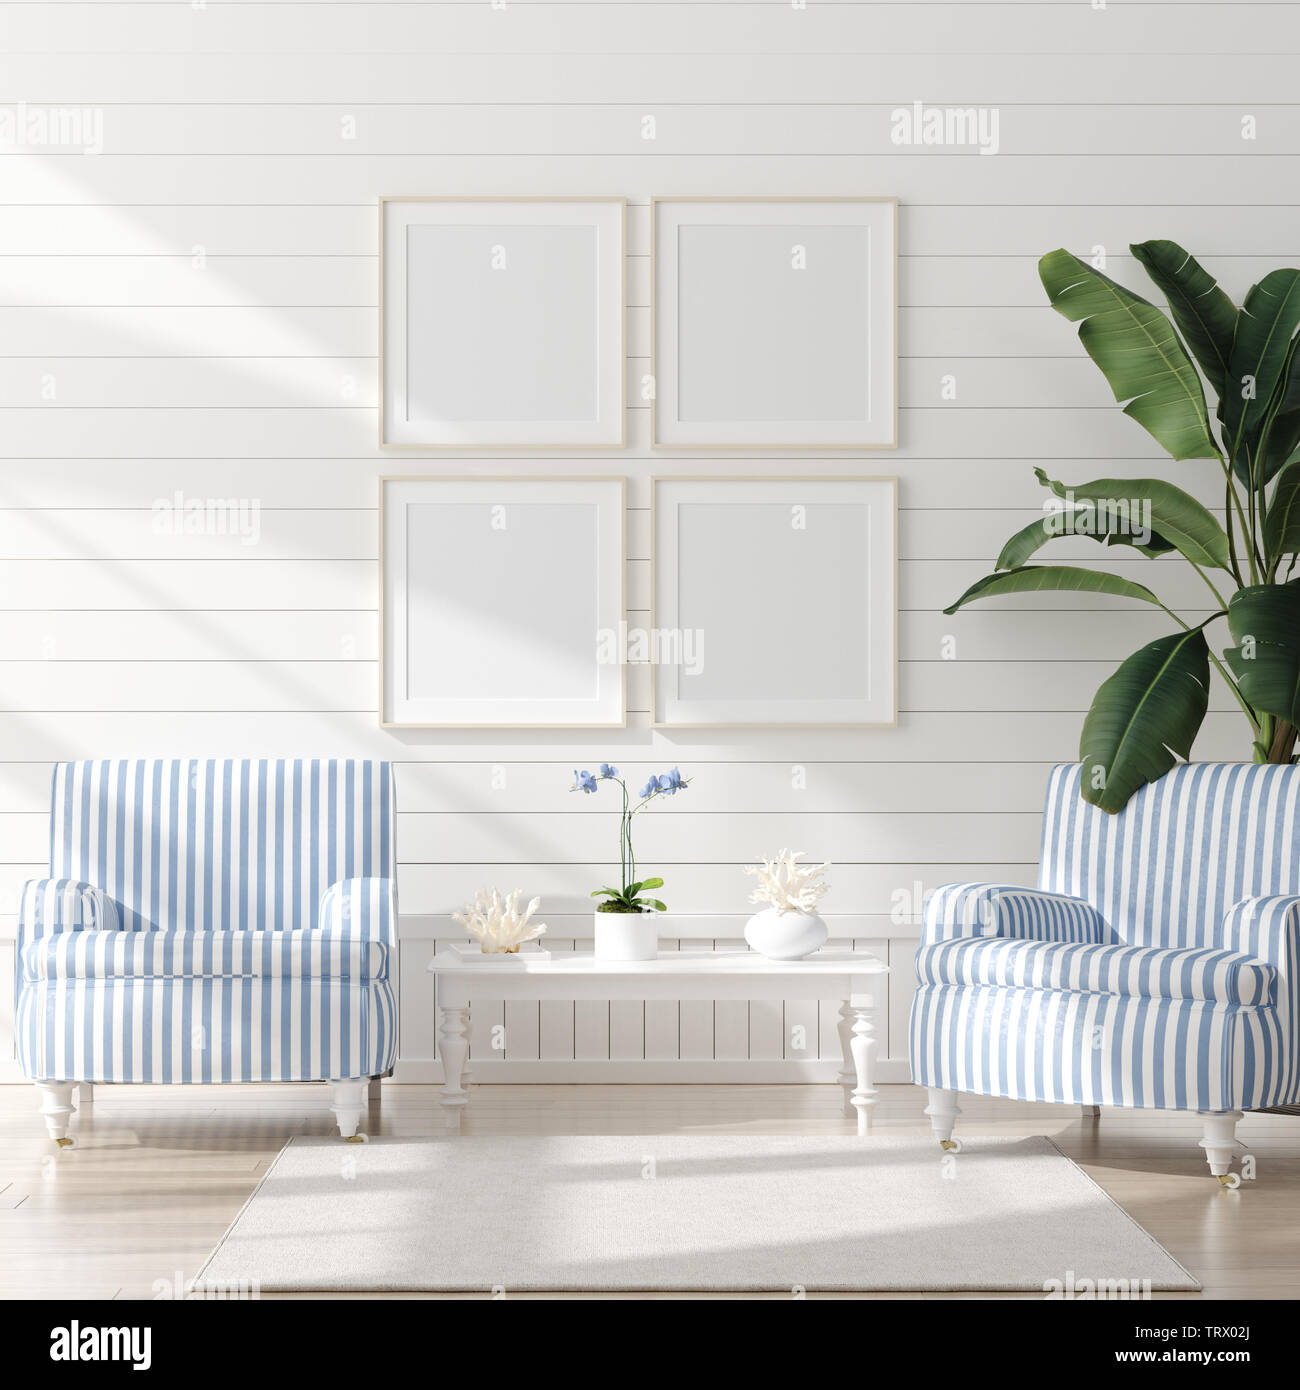 Mock Up Frame In Home Interior Background Coastal Style Living Room With Marine Decor 3d Render Stock Photo Alamy